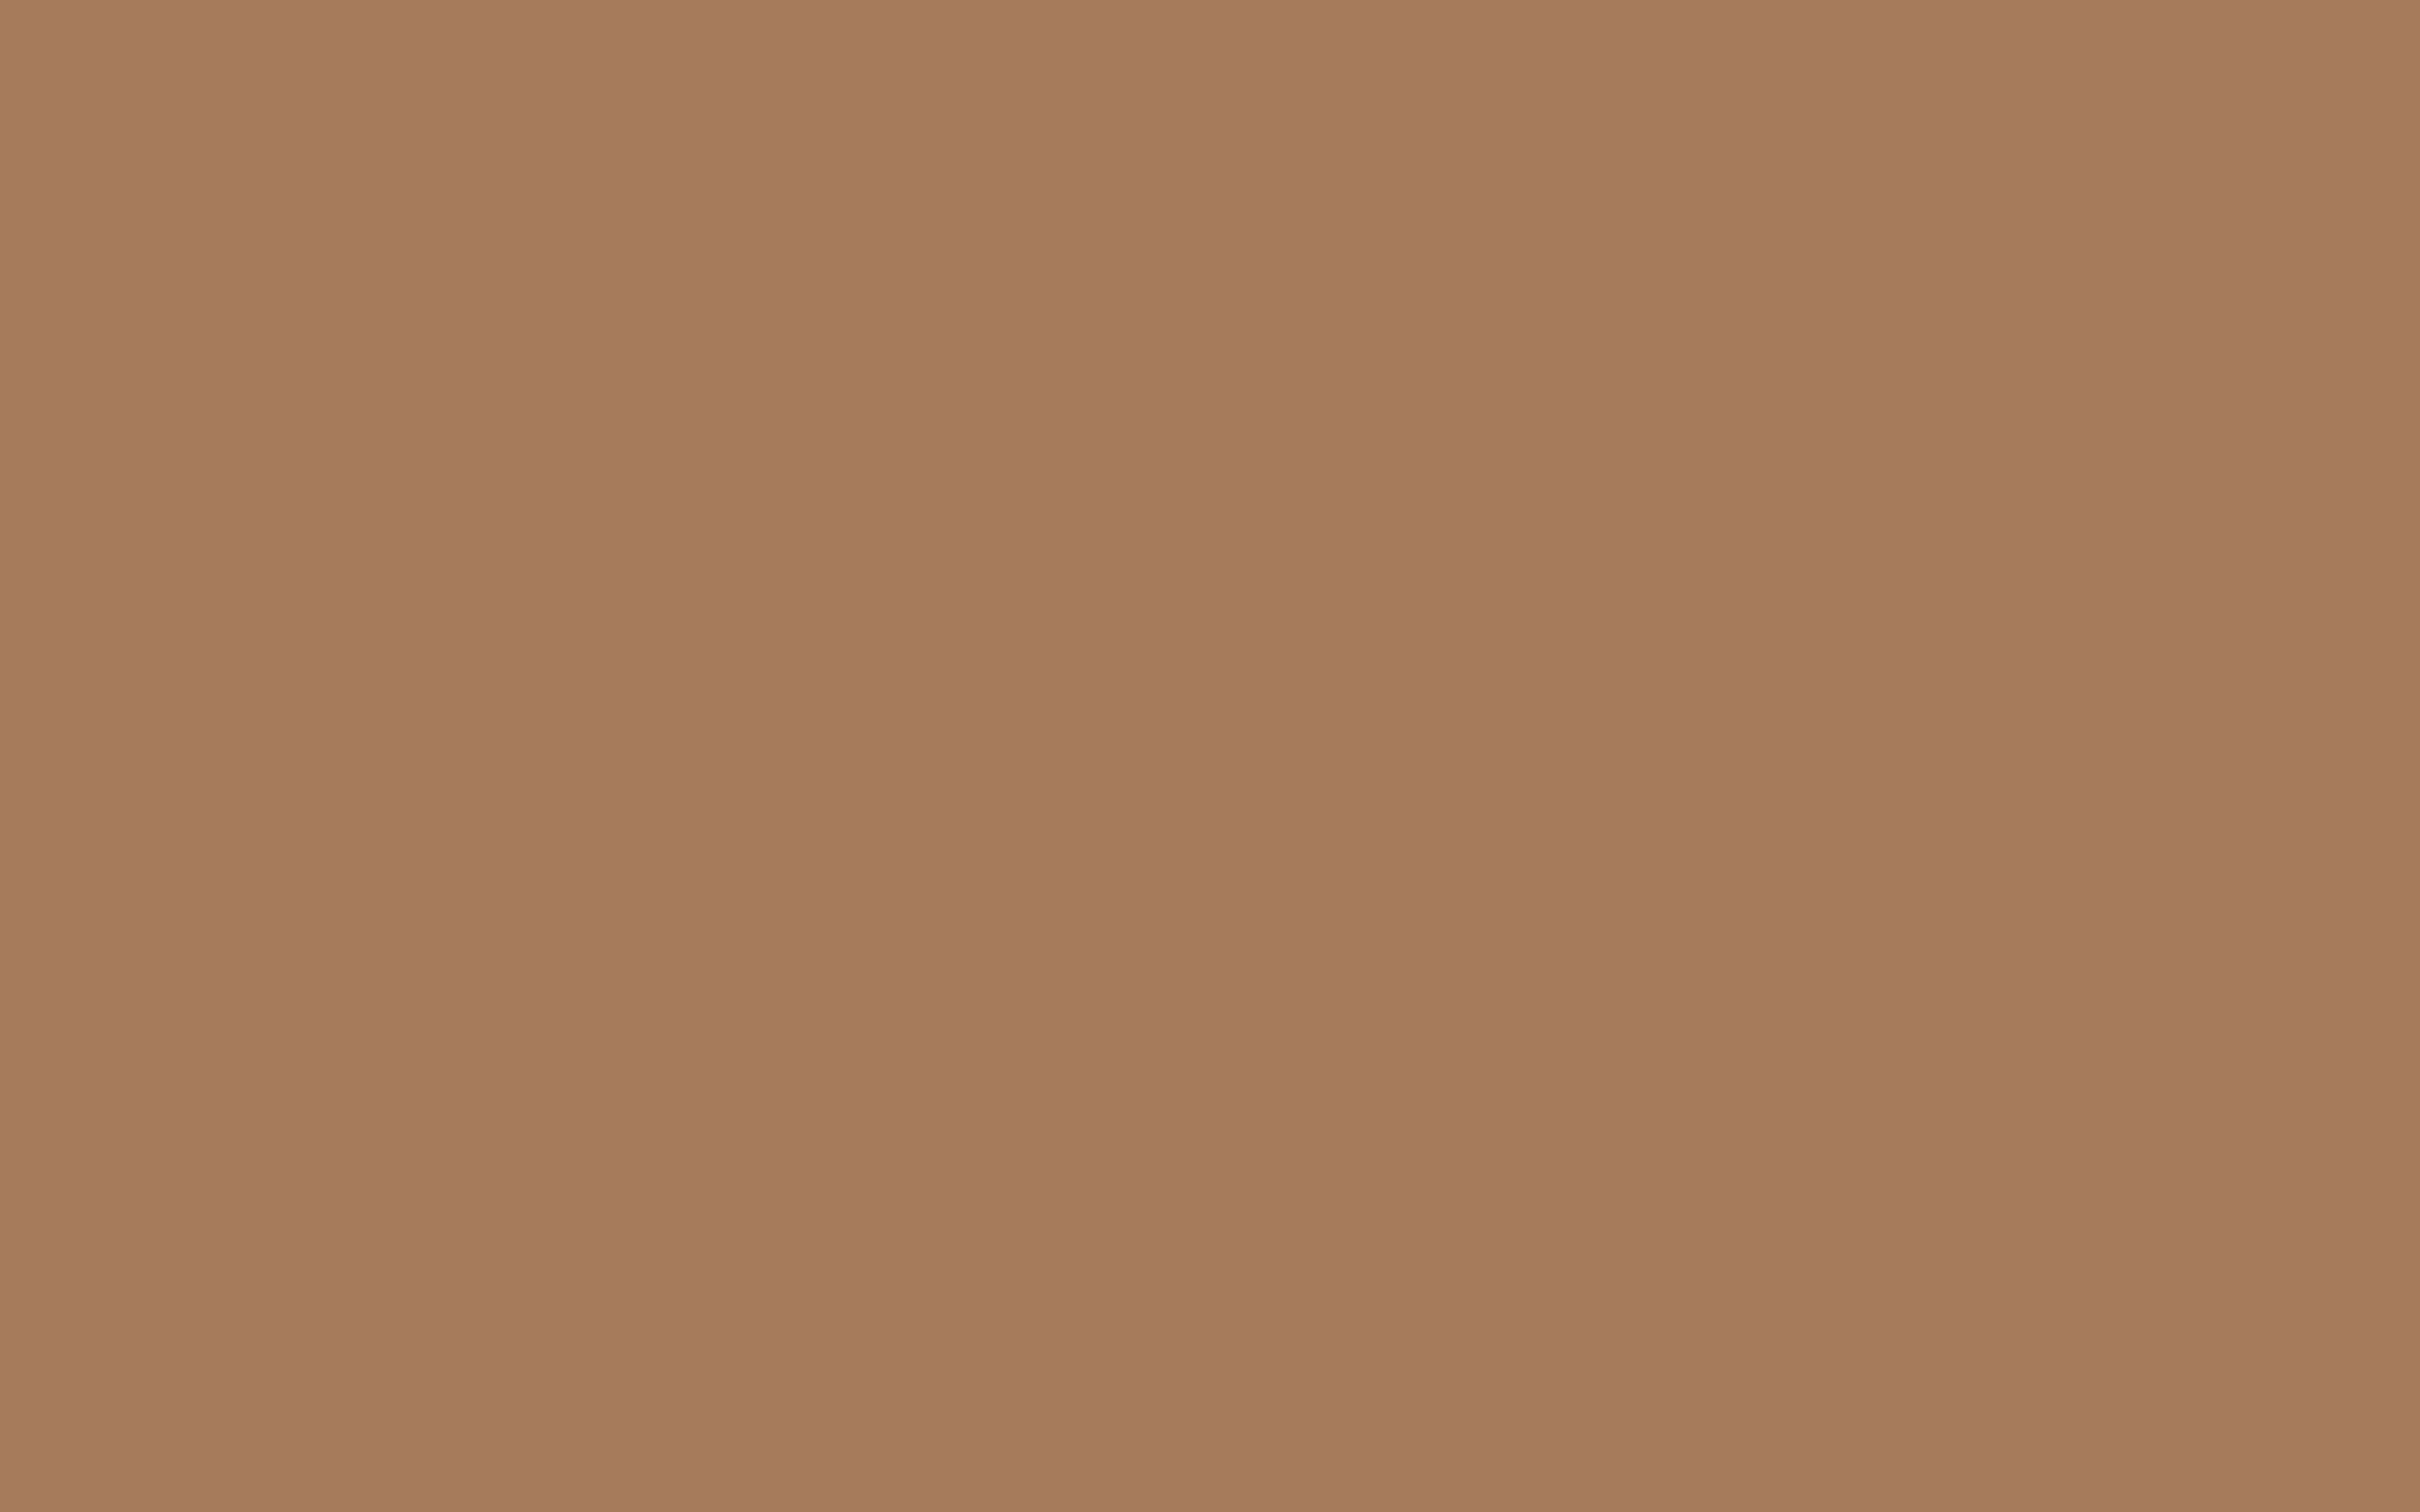 2880x1800 Tuscan Tan Solid Color Background